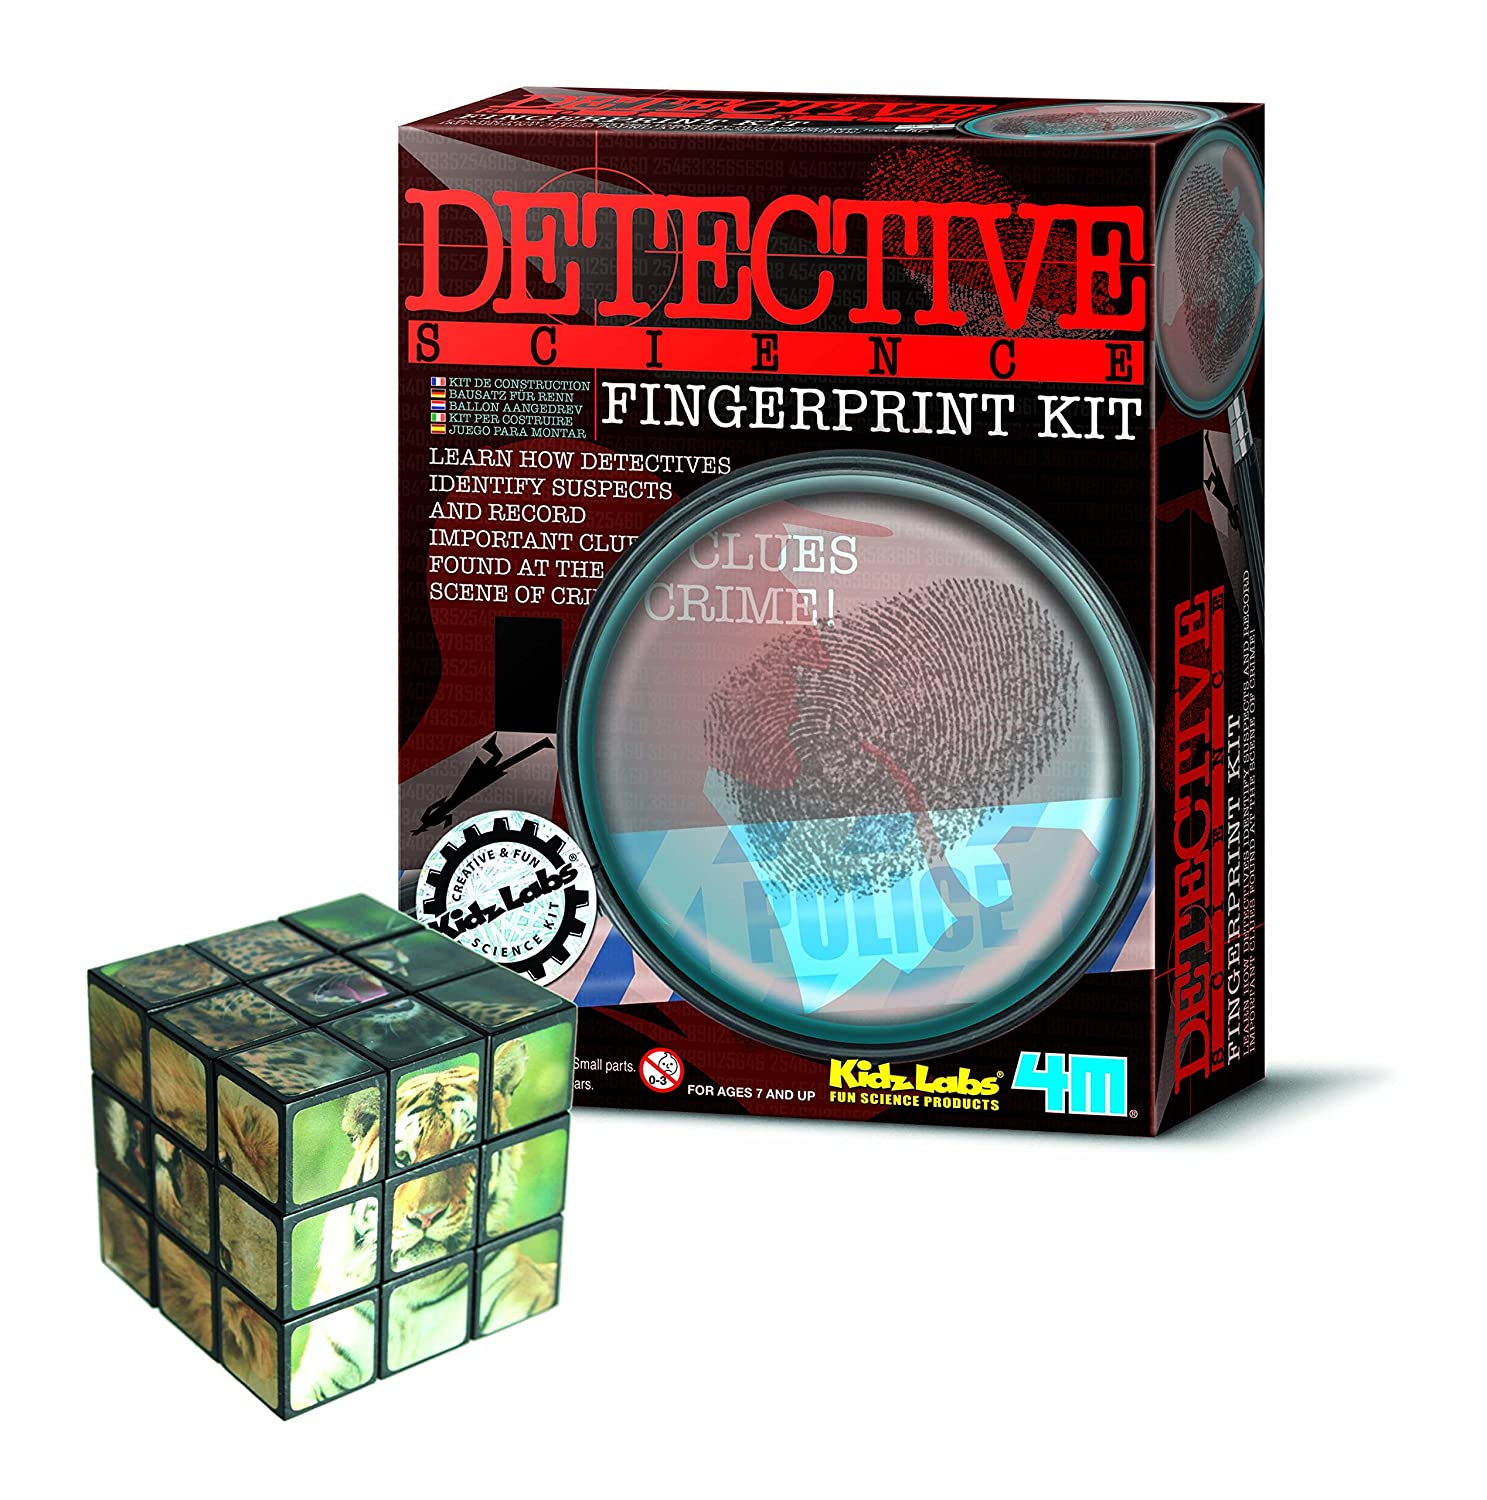 Fantastic Gift Ideals Finger Printing Kit Detective Skills for Young Minds - Comes with a Fun Wild Animal Magic Cube Gadget & Gift Store